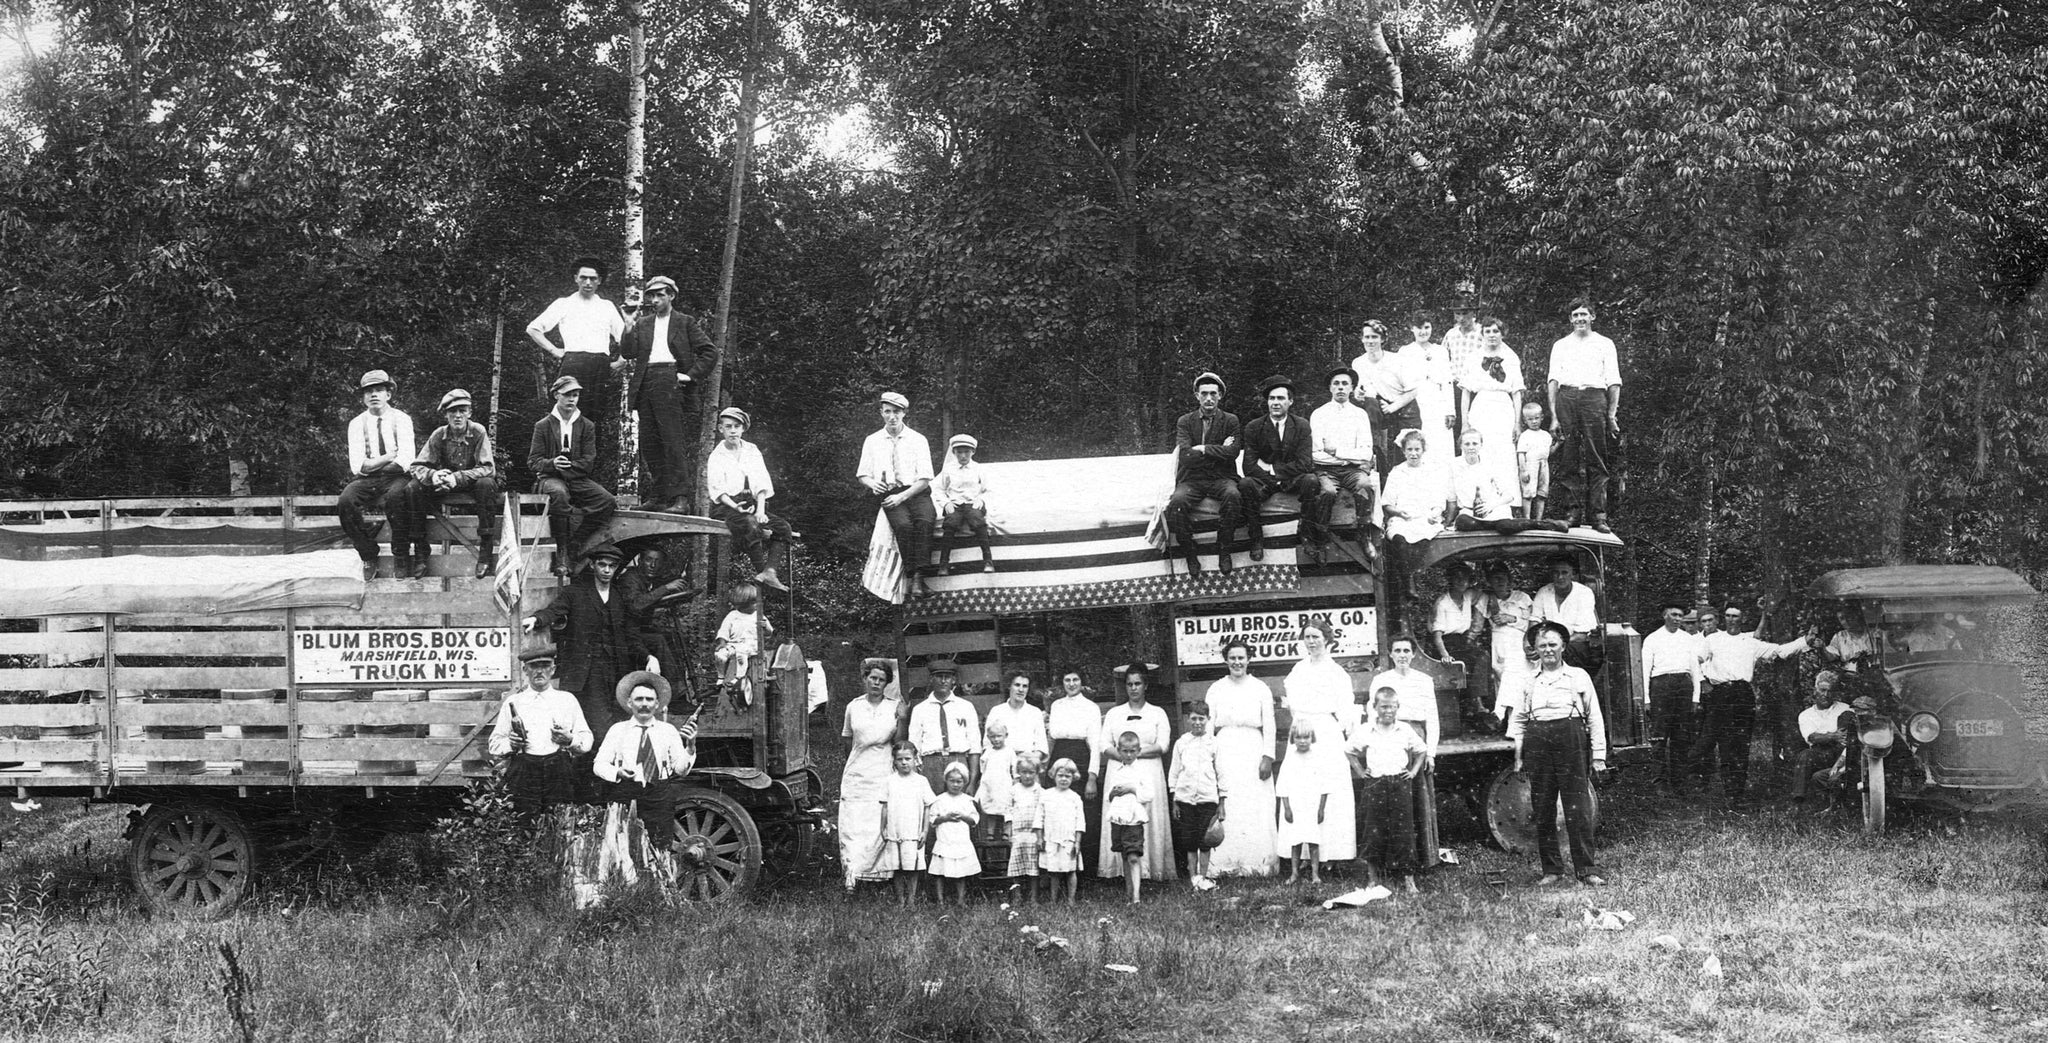 The Blum company picnic in 1910. The Blum brothers, John and Paul, owned the Blum Brothers Box Company and the Wisconsin Butter Tub Company. -- Courtesy North Wood County Historical Society / #C112.15